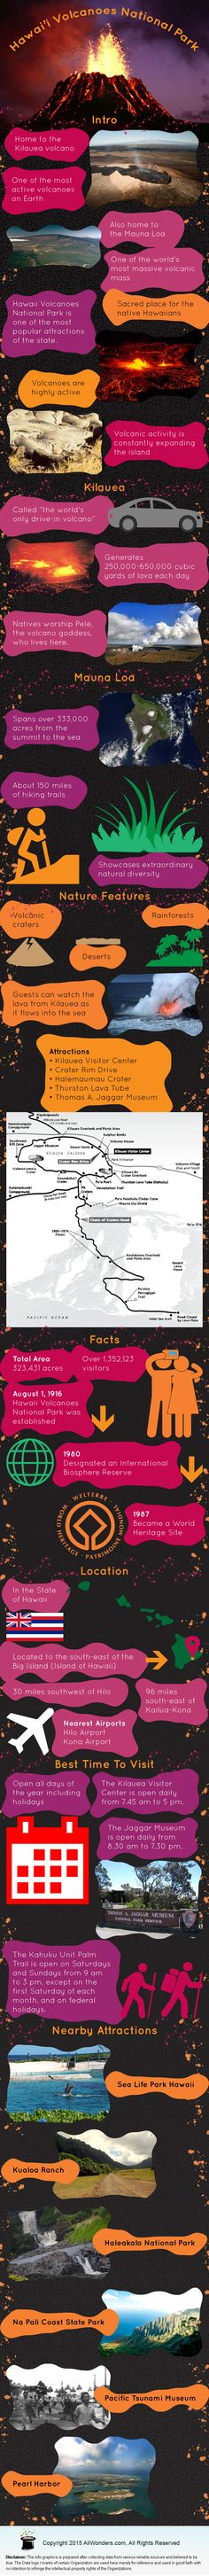 The Hawaii Volcanoes National Park shows details about theHawaii Volcanoes National Park of Hawaii. Get travel information like fast facts, when to visit, weather, places to visit, hotels, restaurants, things to do, transportation and much more.